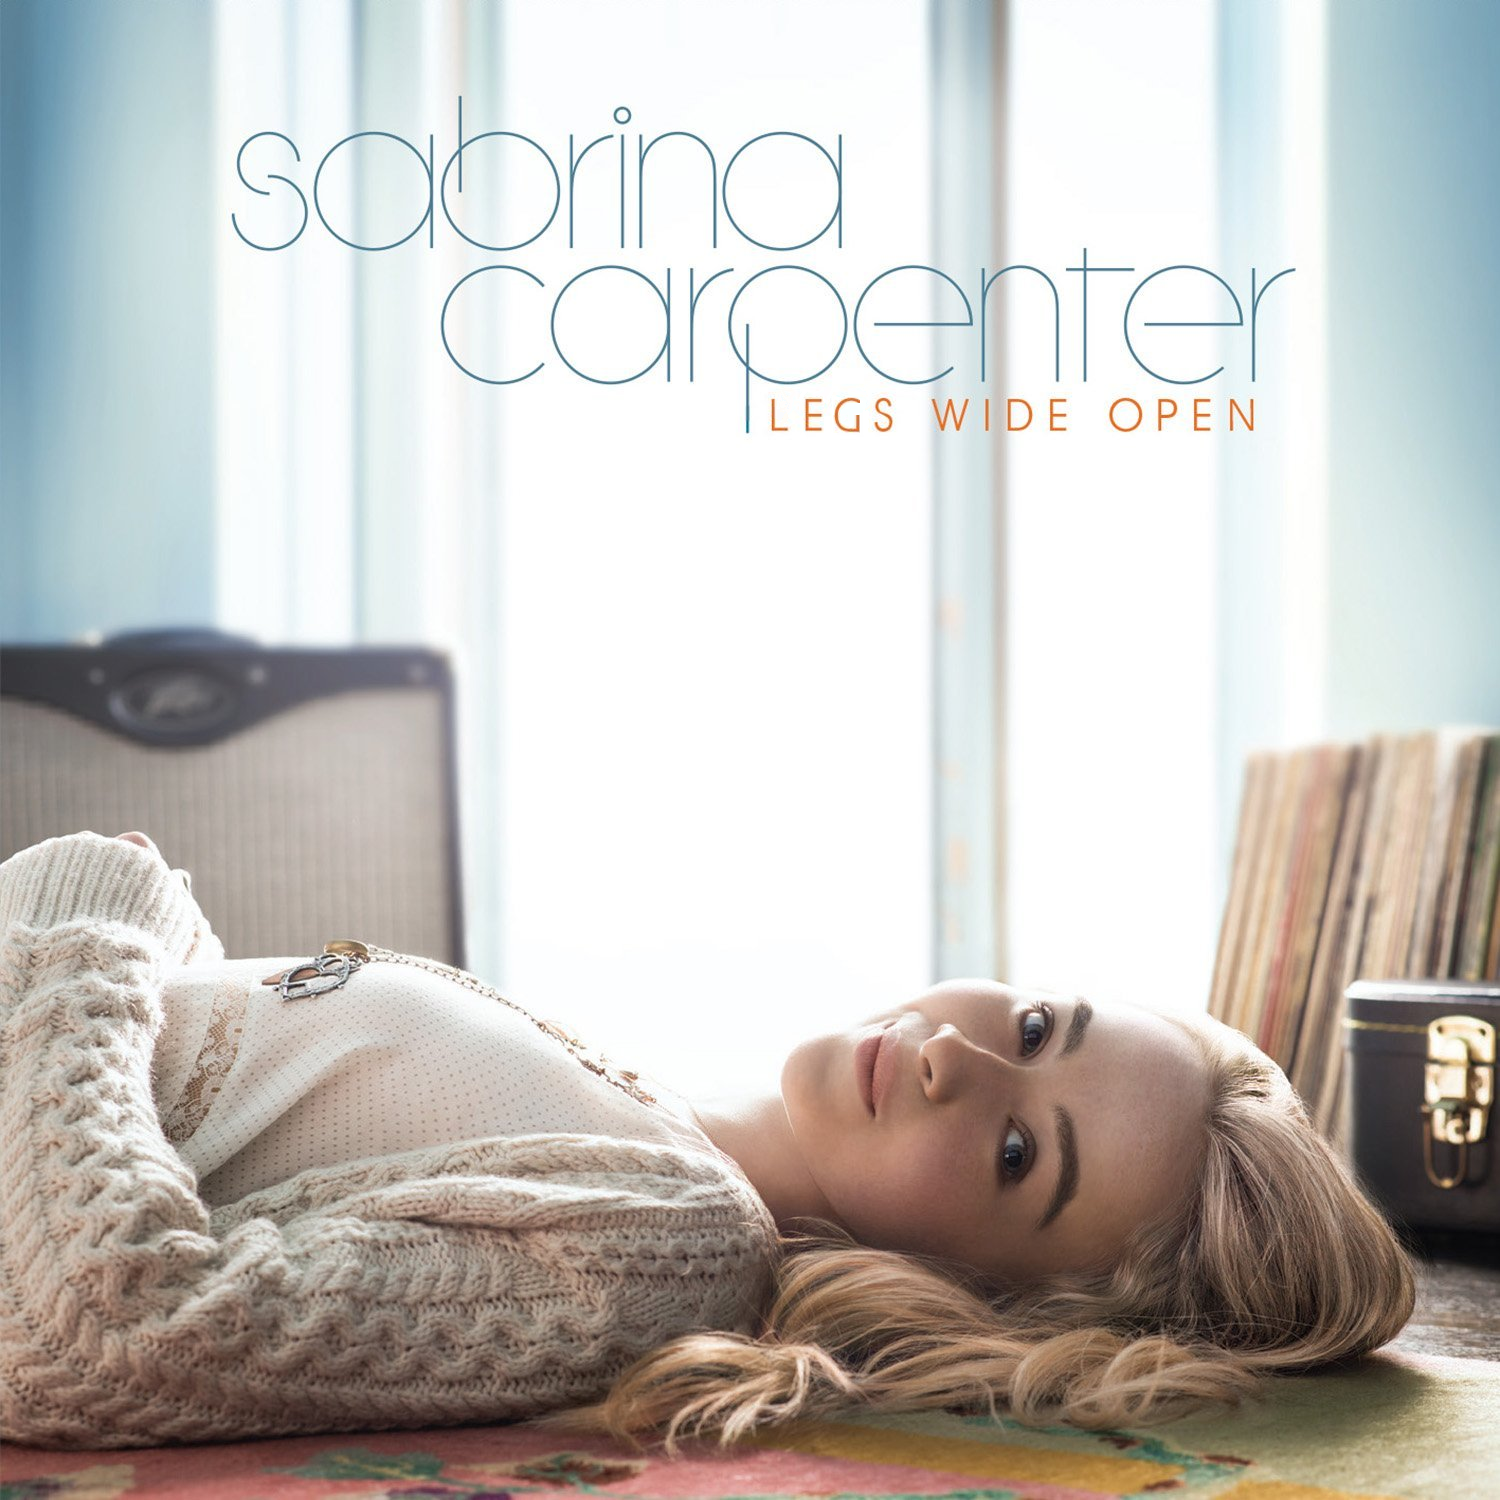 Album cover parody of Eyes Wide Open by Sabrina Carpenter